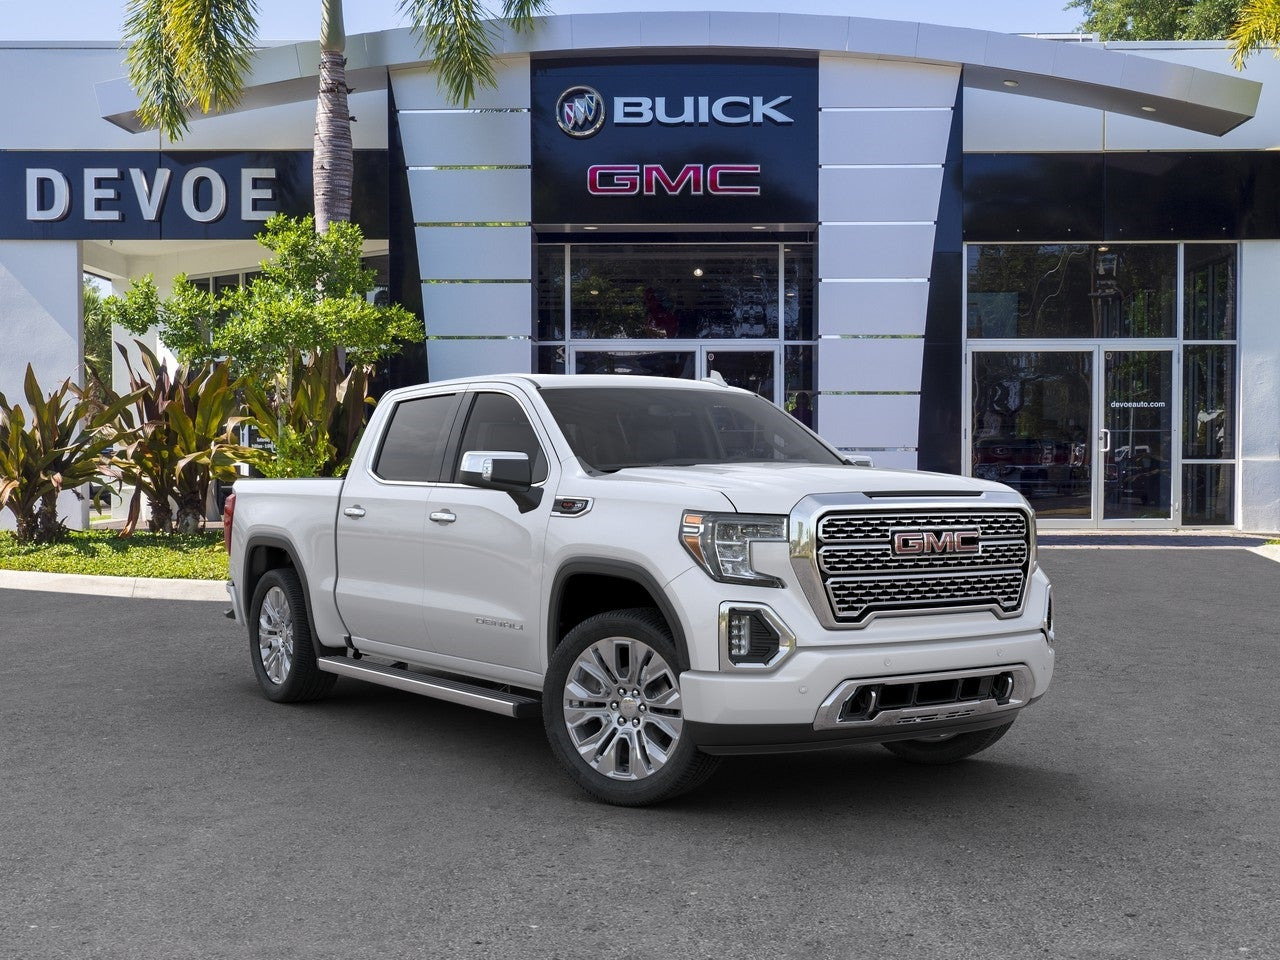 2020 GMC Sierra 1500 Crew Cab 4x4, Pickup #T20433 - photo 6